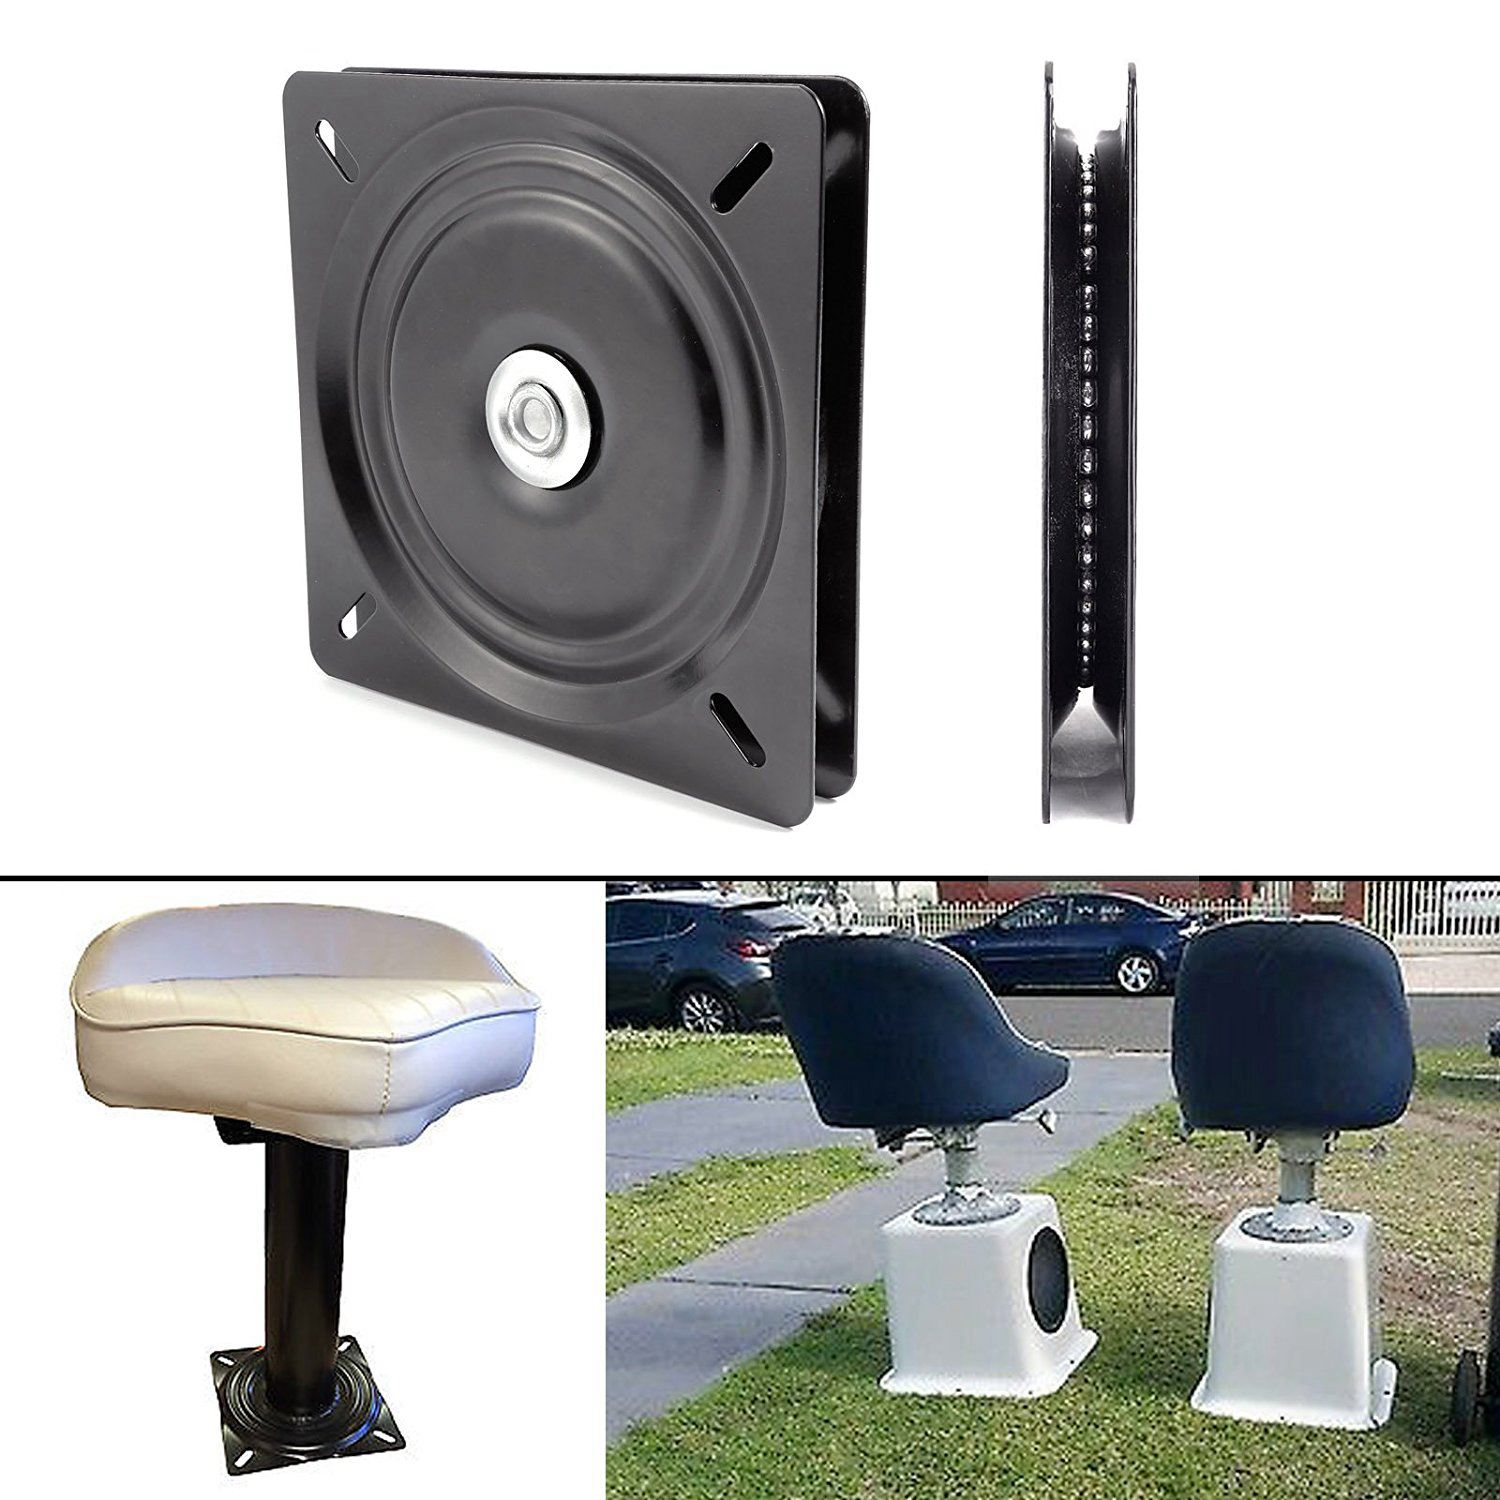 8 Inch Boat Seat Swivel Plate Fishing Boat Marine Seat Rotating Cushion 360 Degree Universal Rotation 20 X 20 X 2 Cm